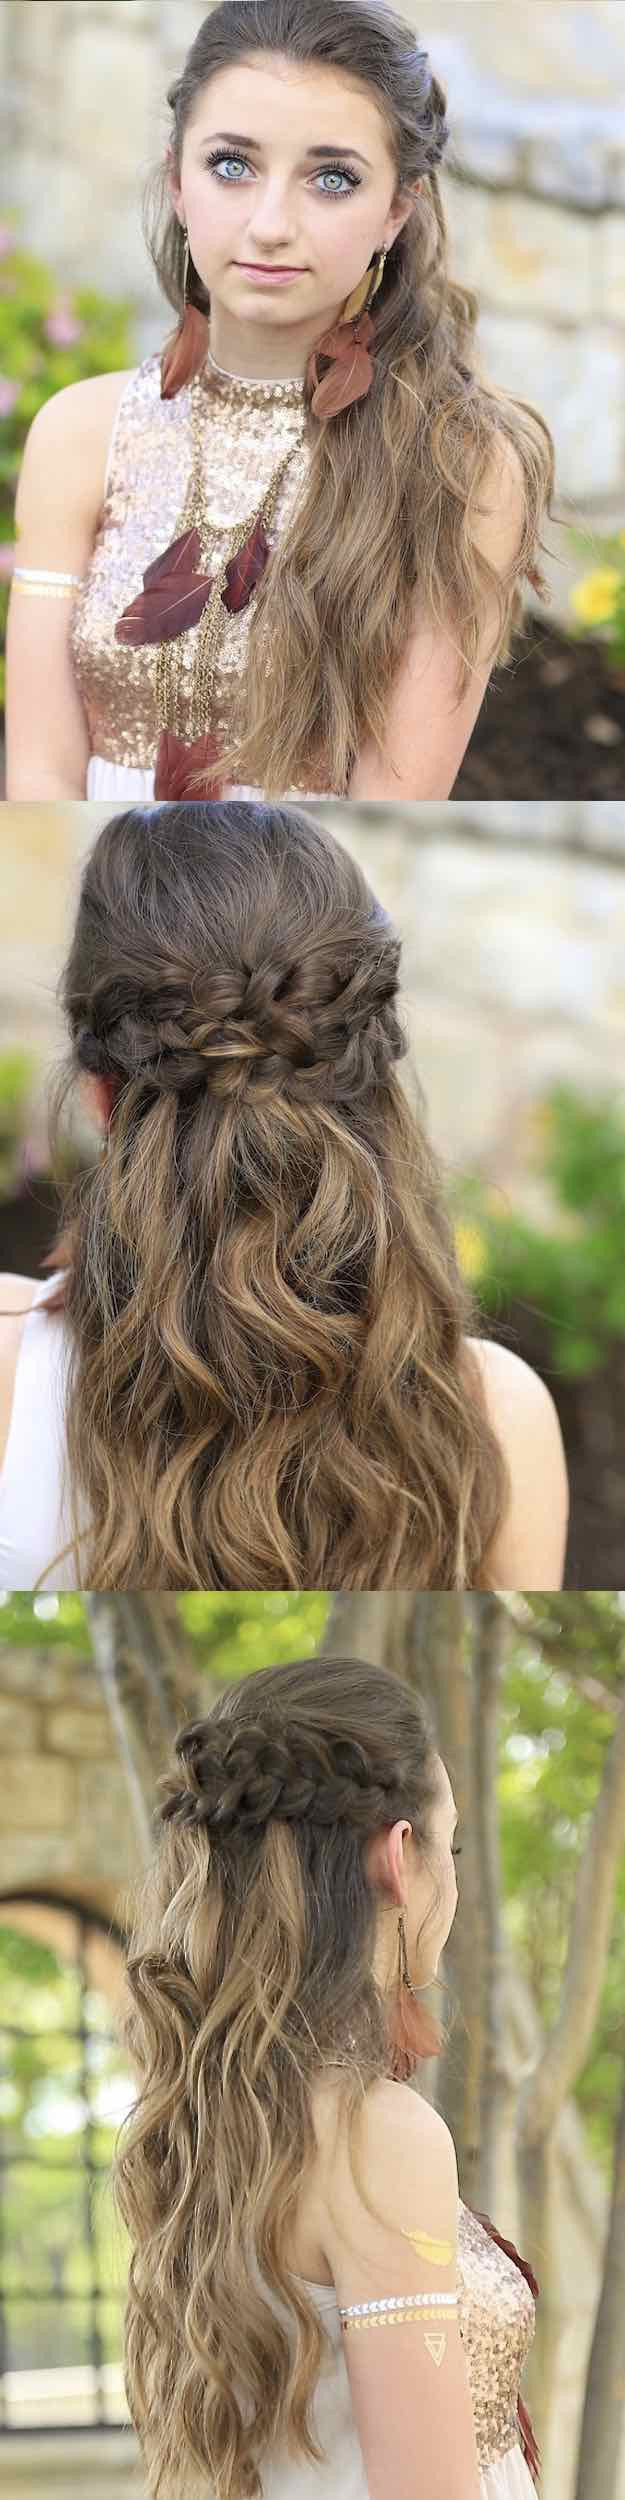 Best ideas about Prom Hairstyles For Medium Hair Down . Save or Pin 25 Easy Half Up Half Down Hairstyle Tutorials For Prom Now.